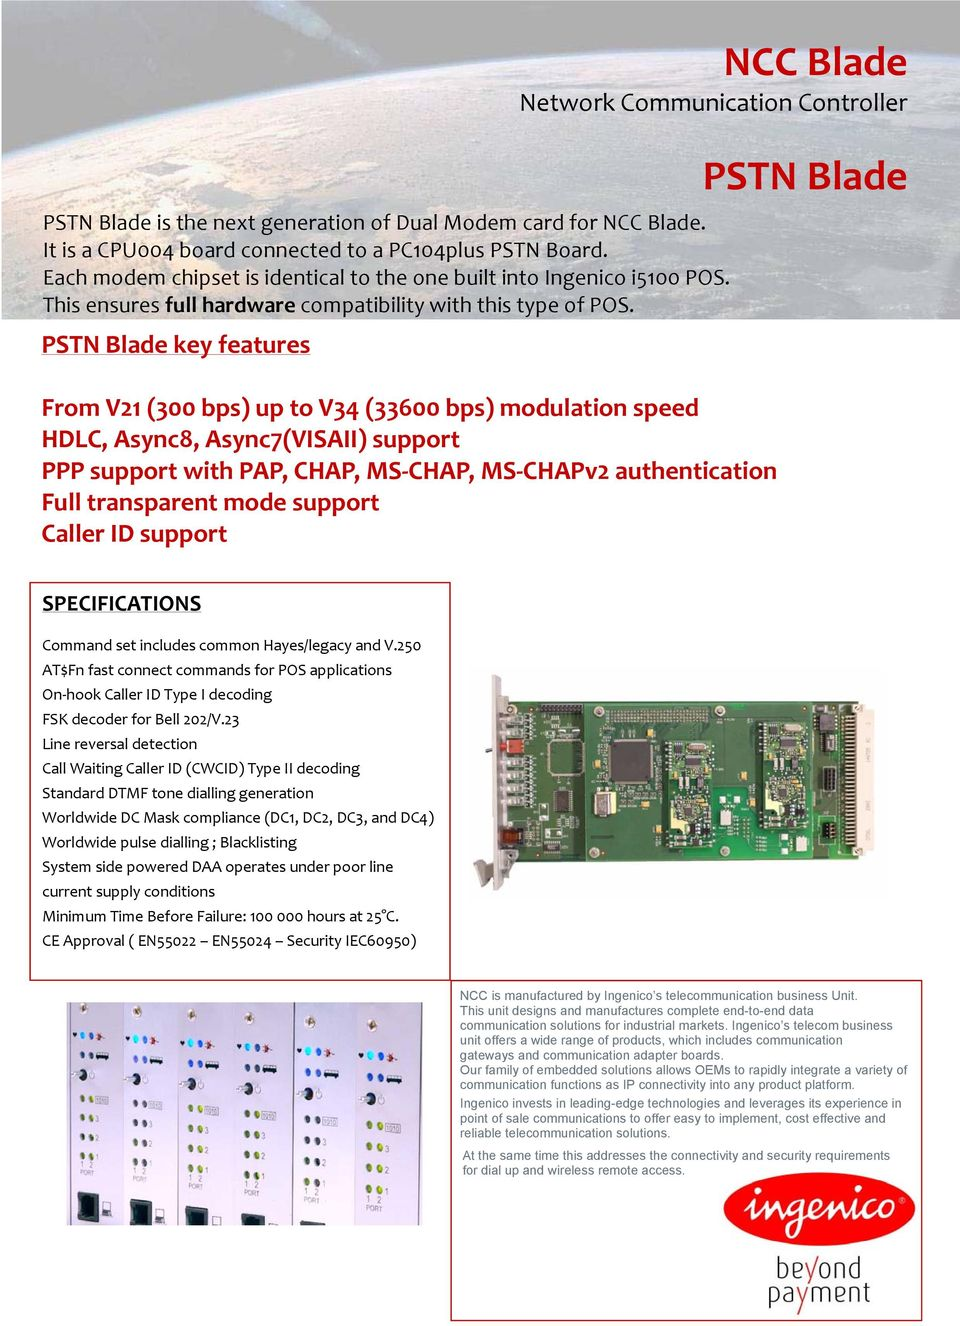 PSTN Blade key features From V21 (300 bps) up to V34 (33600 bps) modulation speed HDLC, Async8, Async7(VISAII) support PPP support with PAP, CHAP, MS CHAP, MS CHAPv2 authentication Full transparent